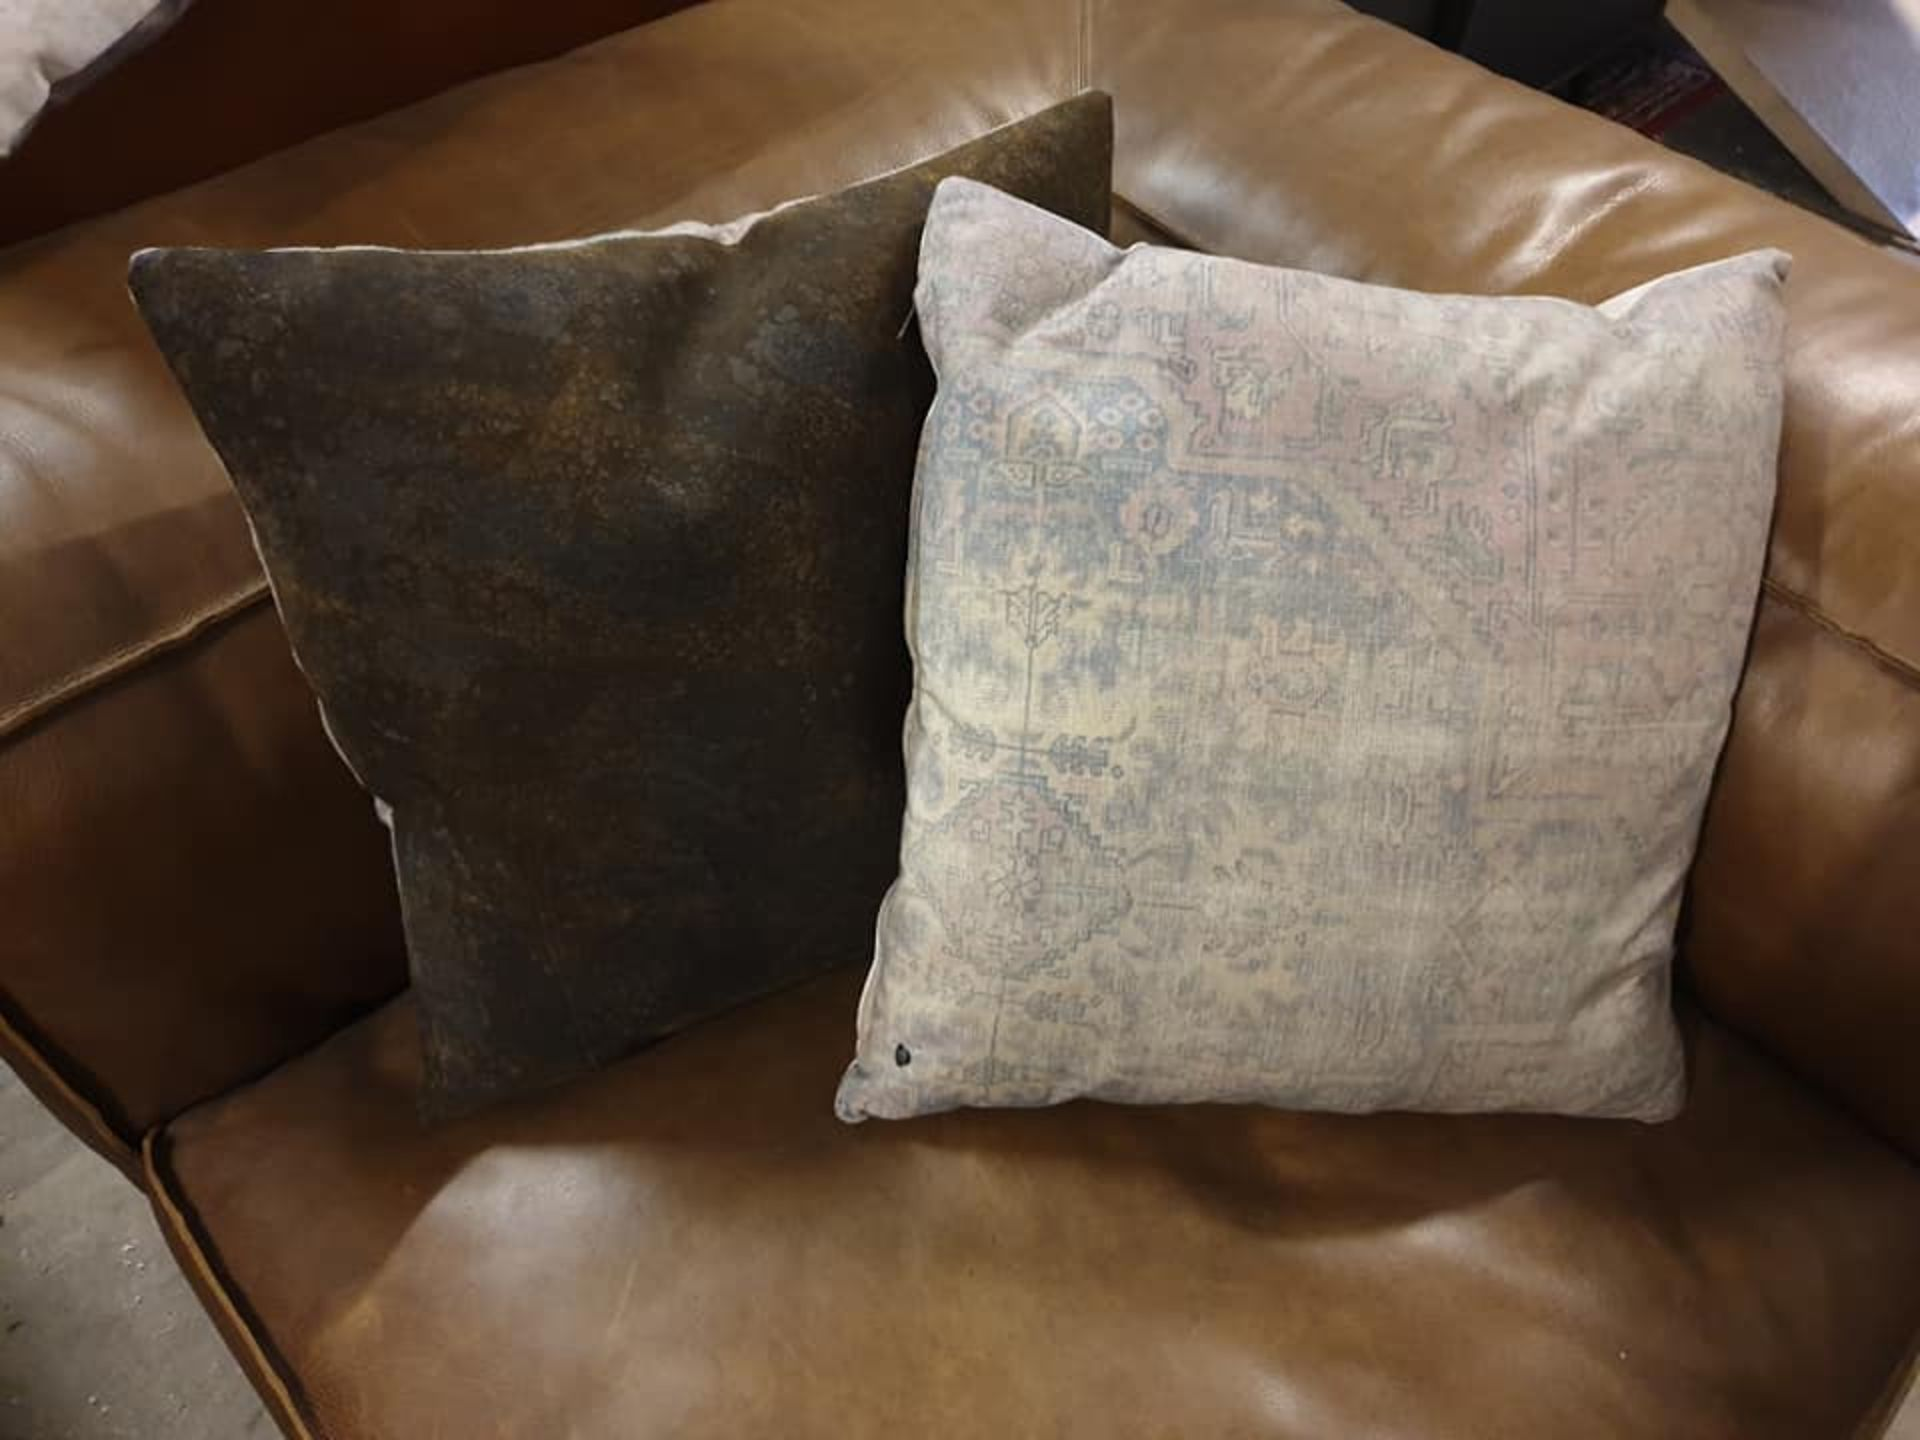 Lot 12 - Rugger Cushion Wreaked Black Leather & Patterned Fabric Timothy Oulton Took Inspiration For His